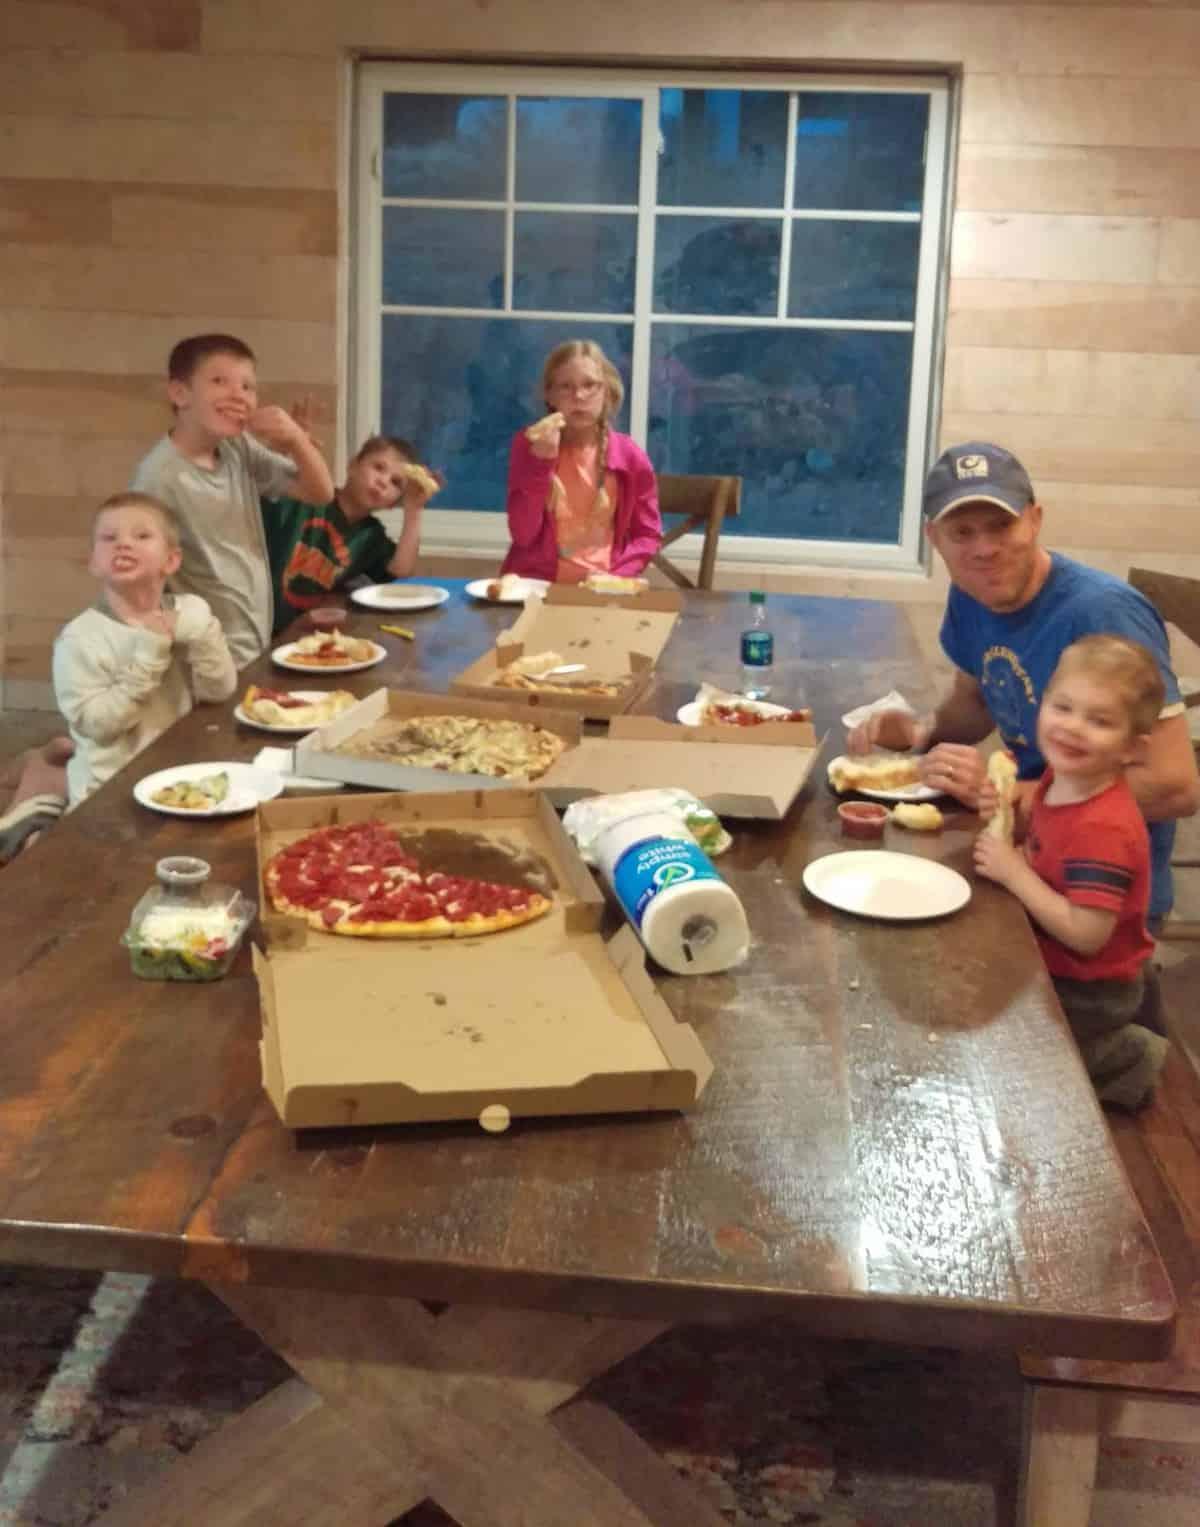 a family around their new kitchen table eating pizza